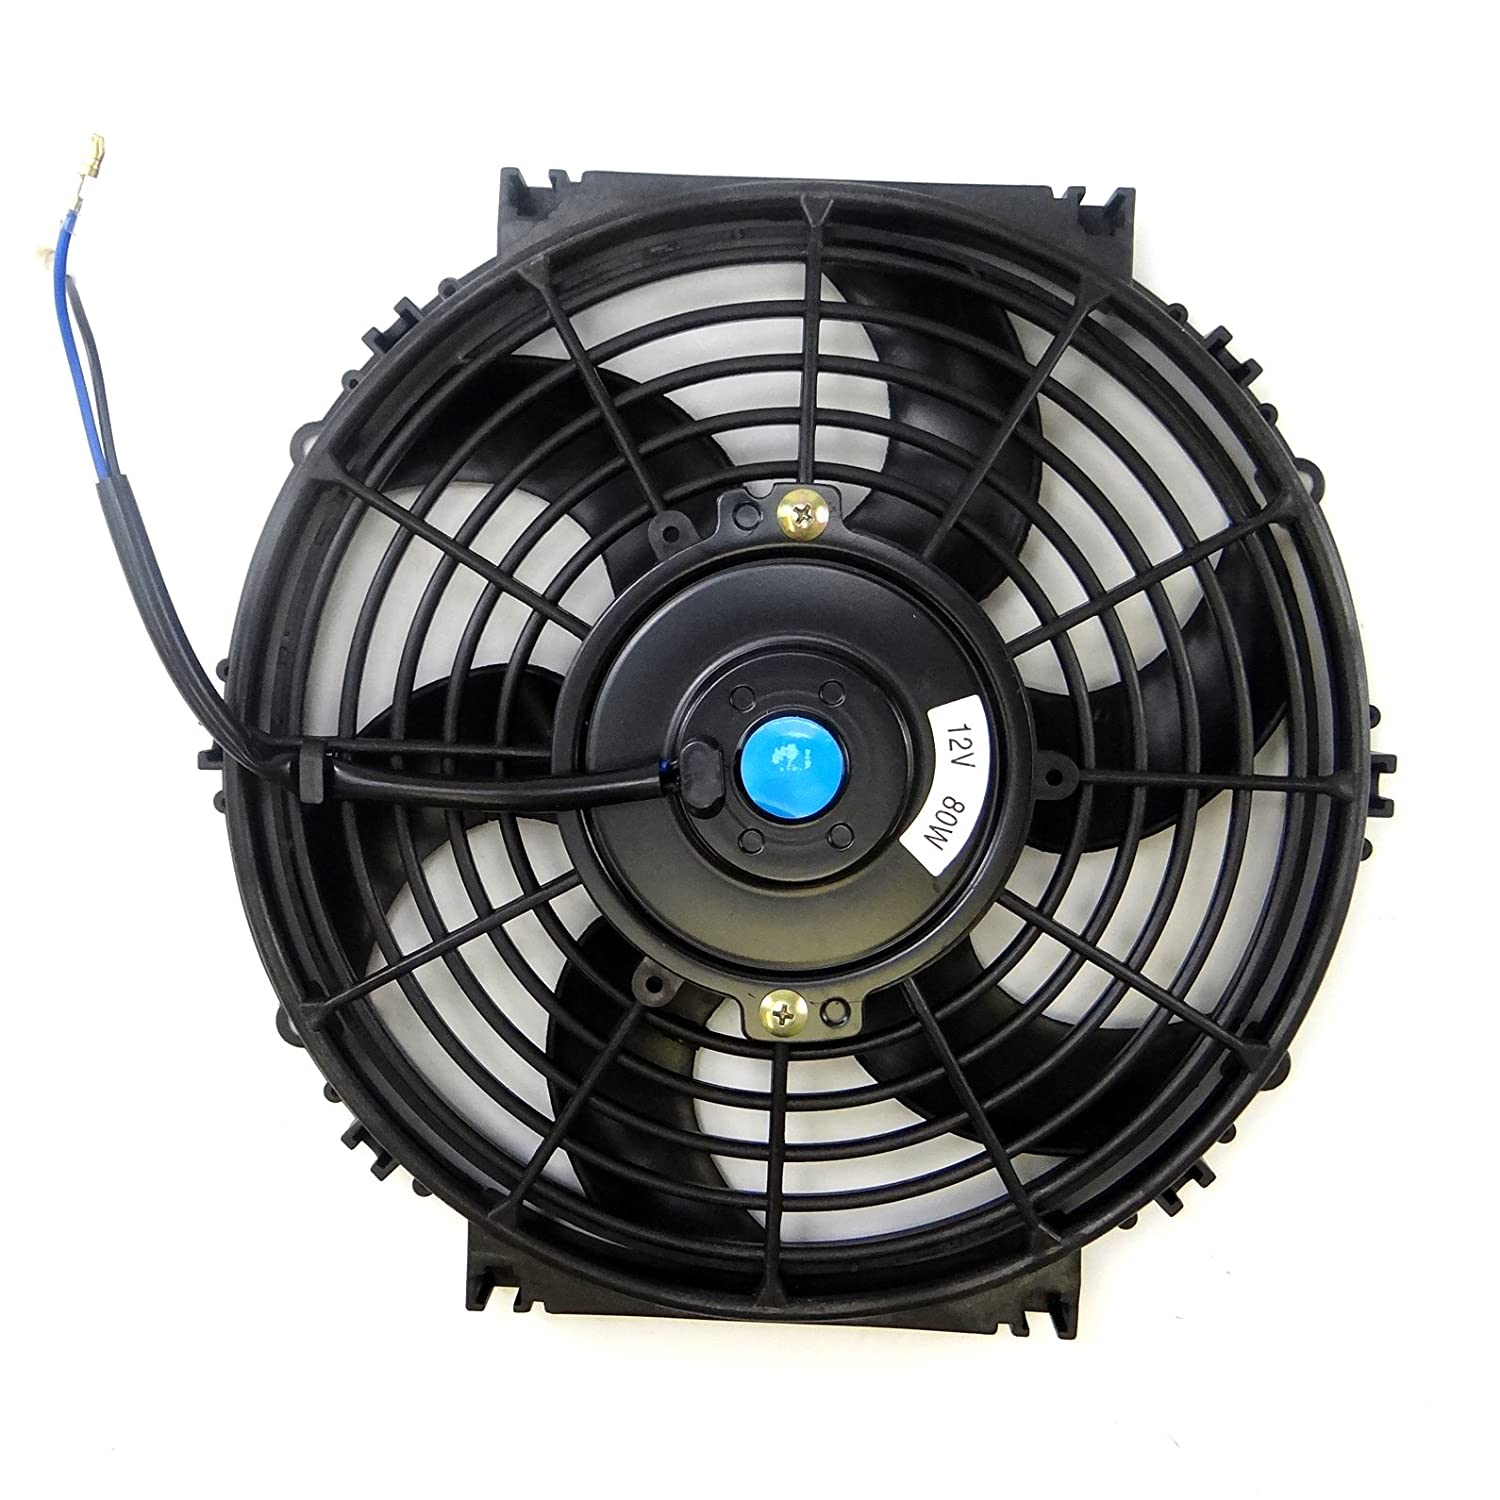 Set of 2 Universal 12 inch Slim Fan Push Pull Electric Radiator Cooling 12V Mount Kit